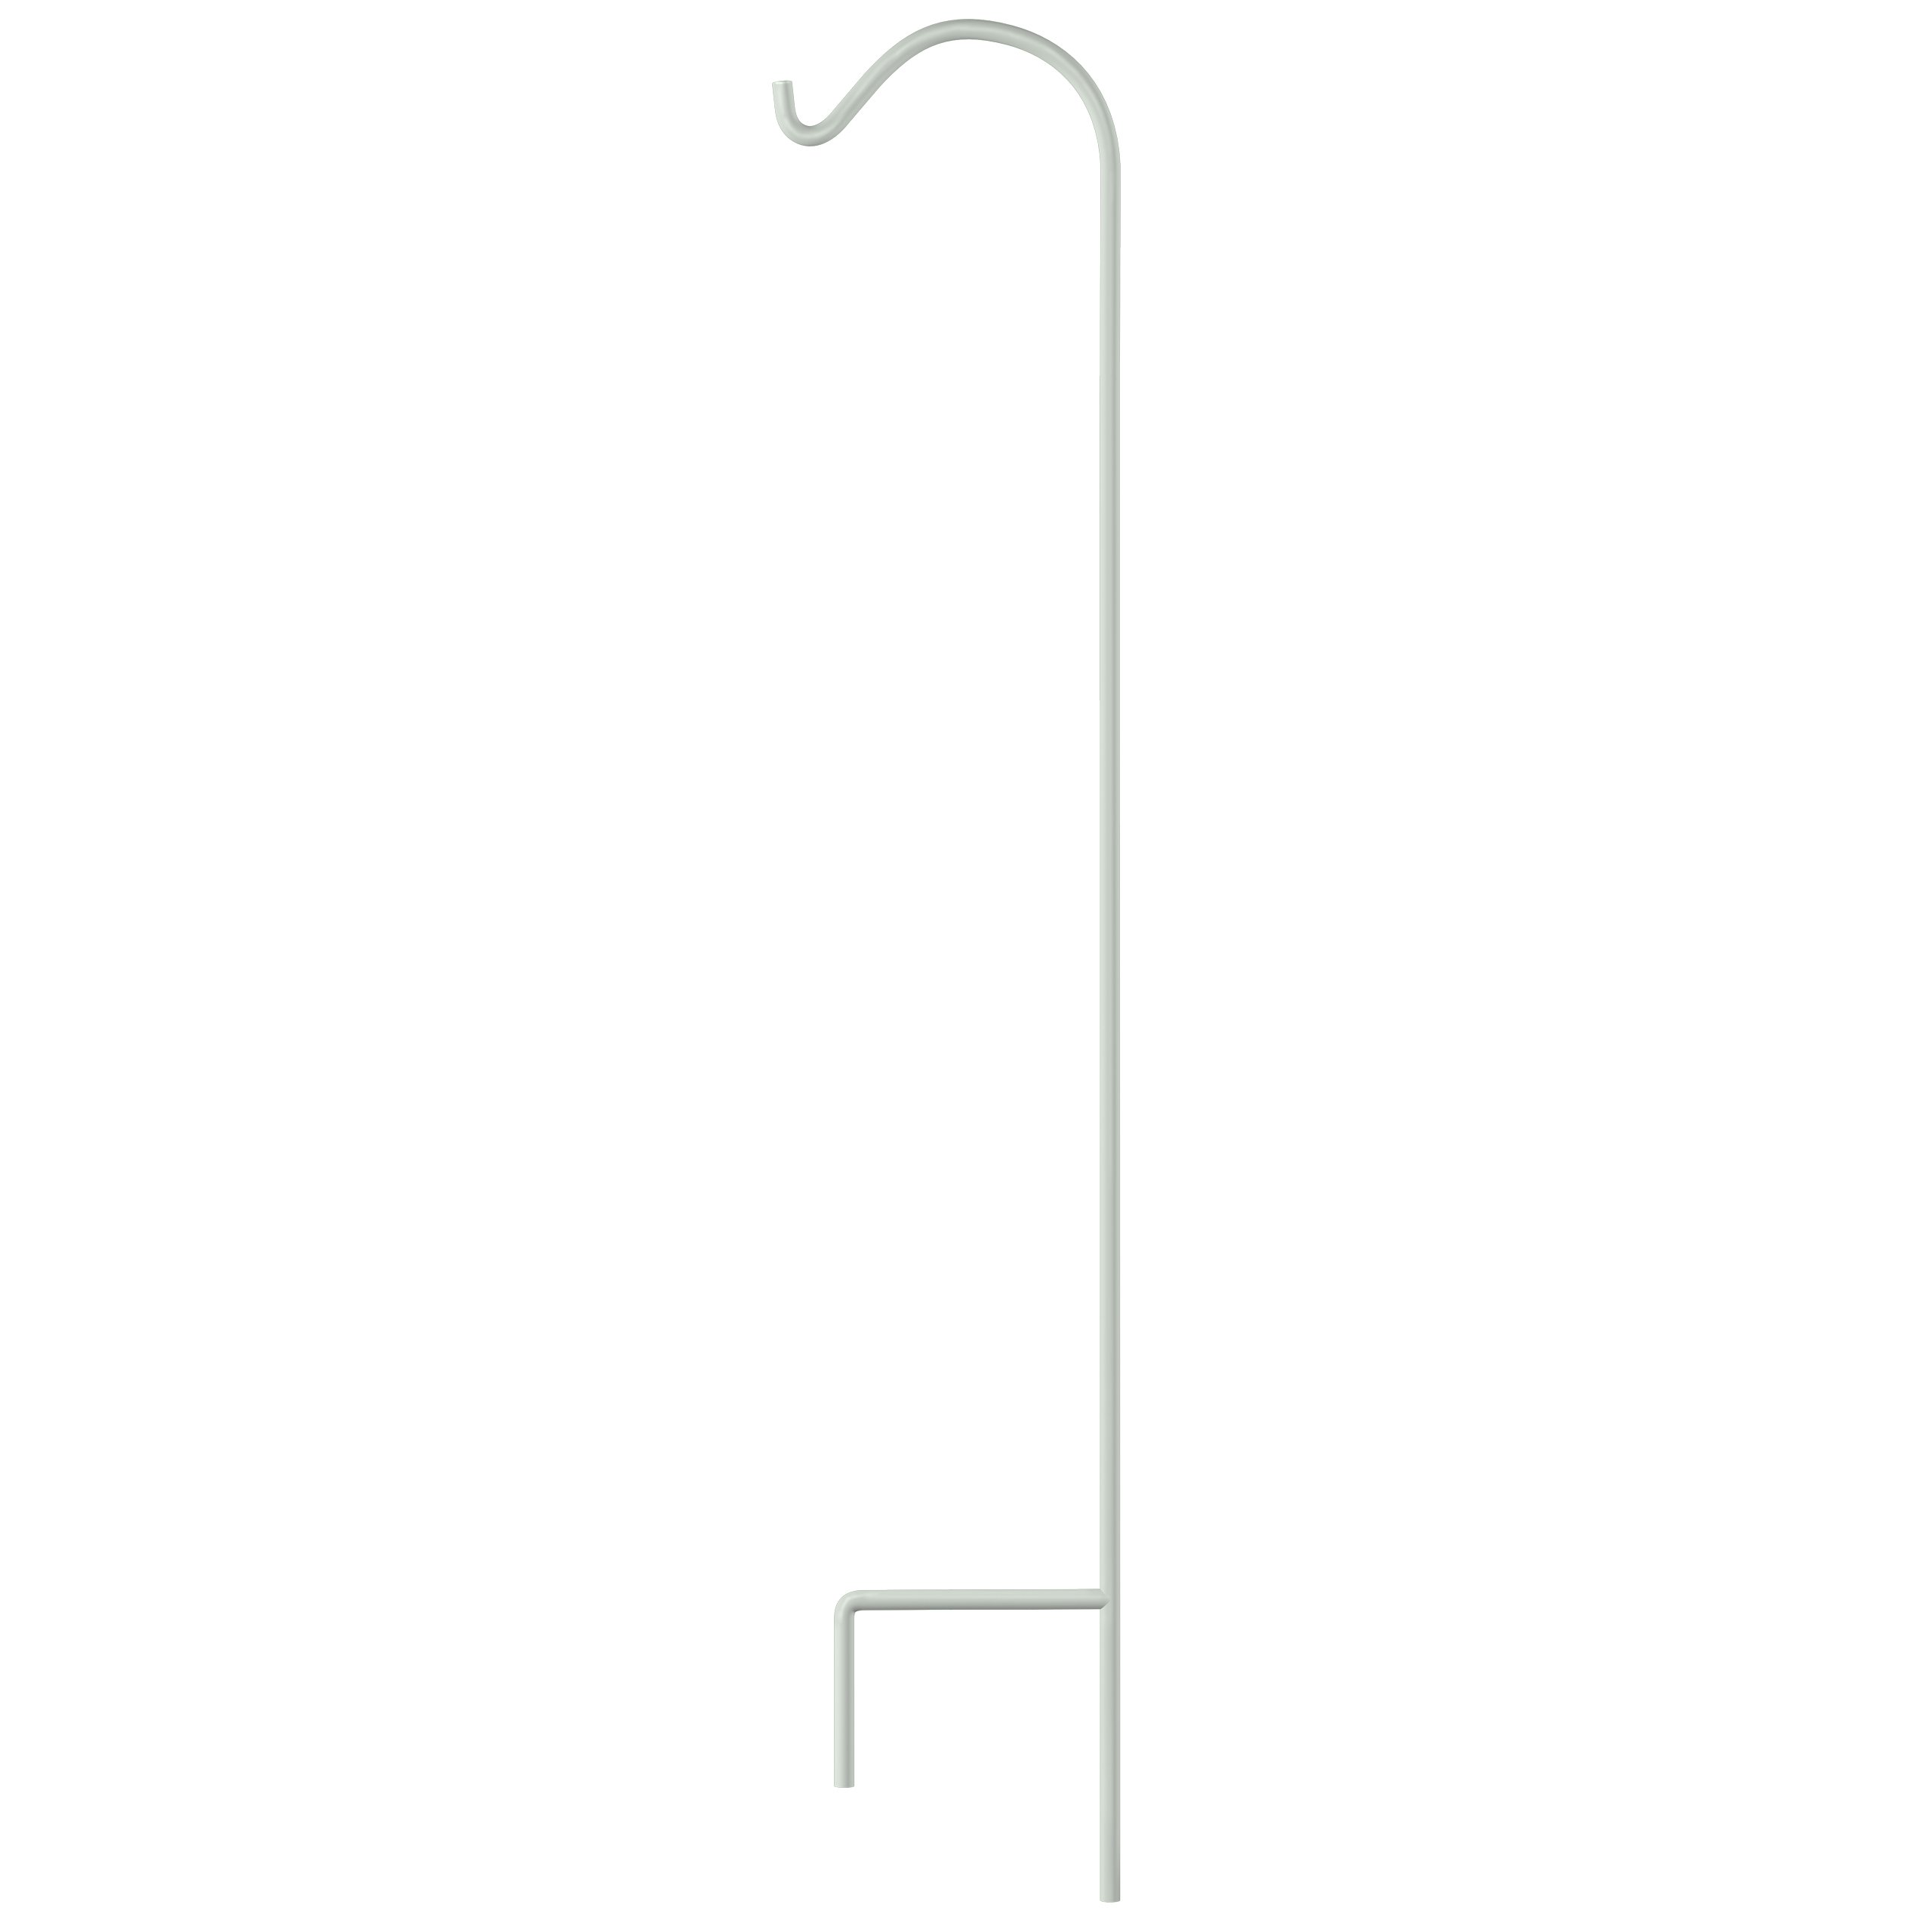 GrayBunny GB-6821 Shepherd Hook, 65 Inch, White, Premium Extra Thick 1/2 Inch Diameter Rust Resistant Steel Hooks For Hanging Planters, Bird Feeders, Mason Jars, Lanterns and More!